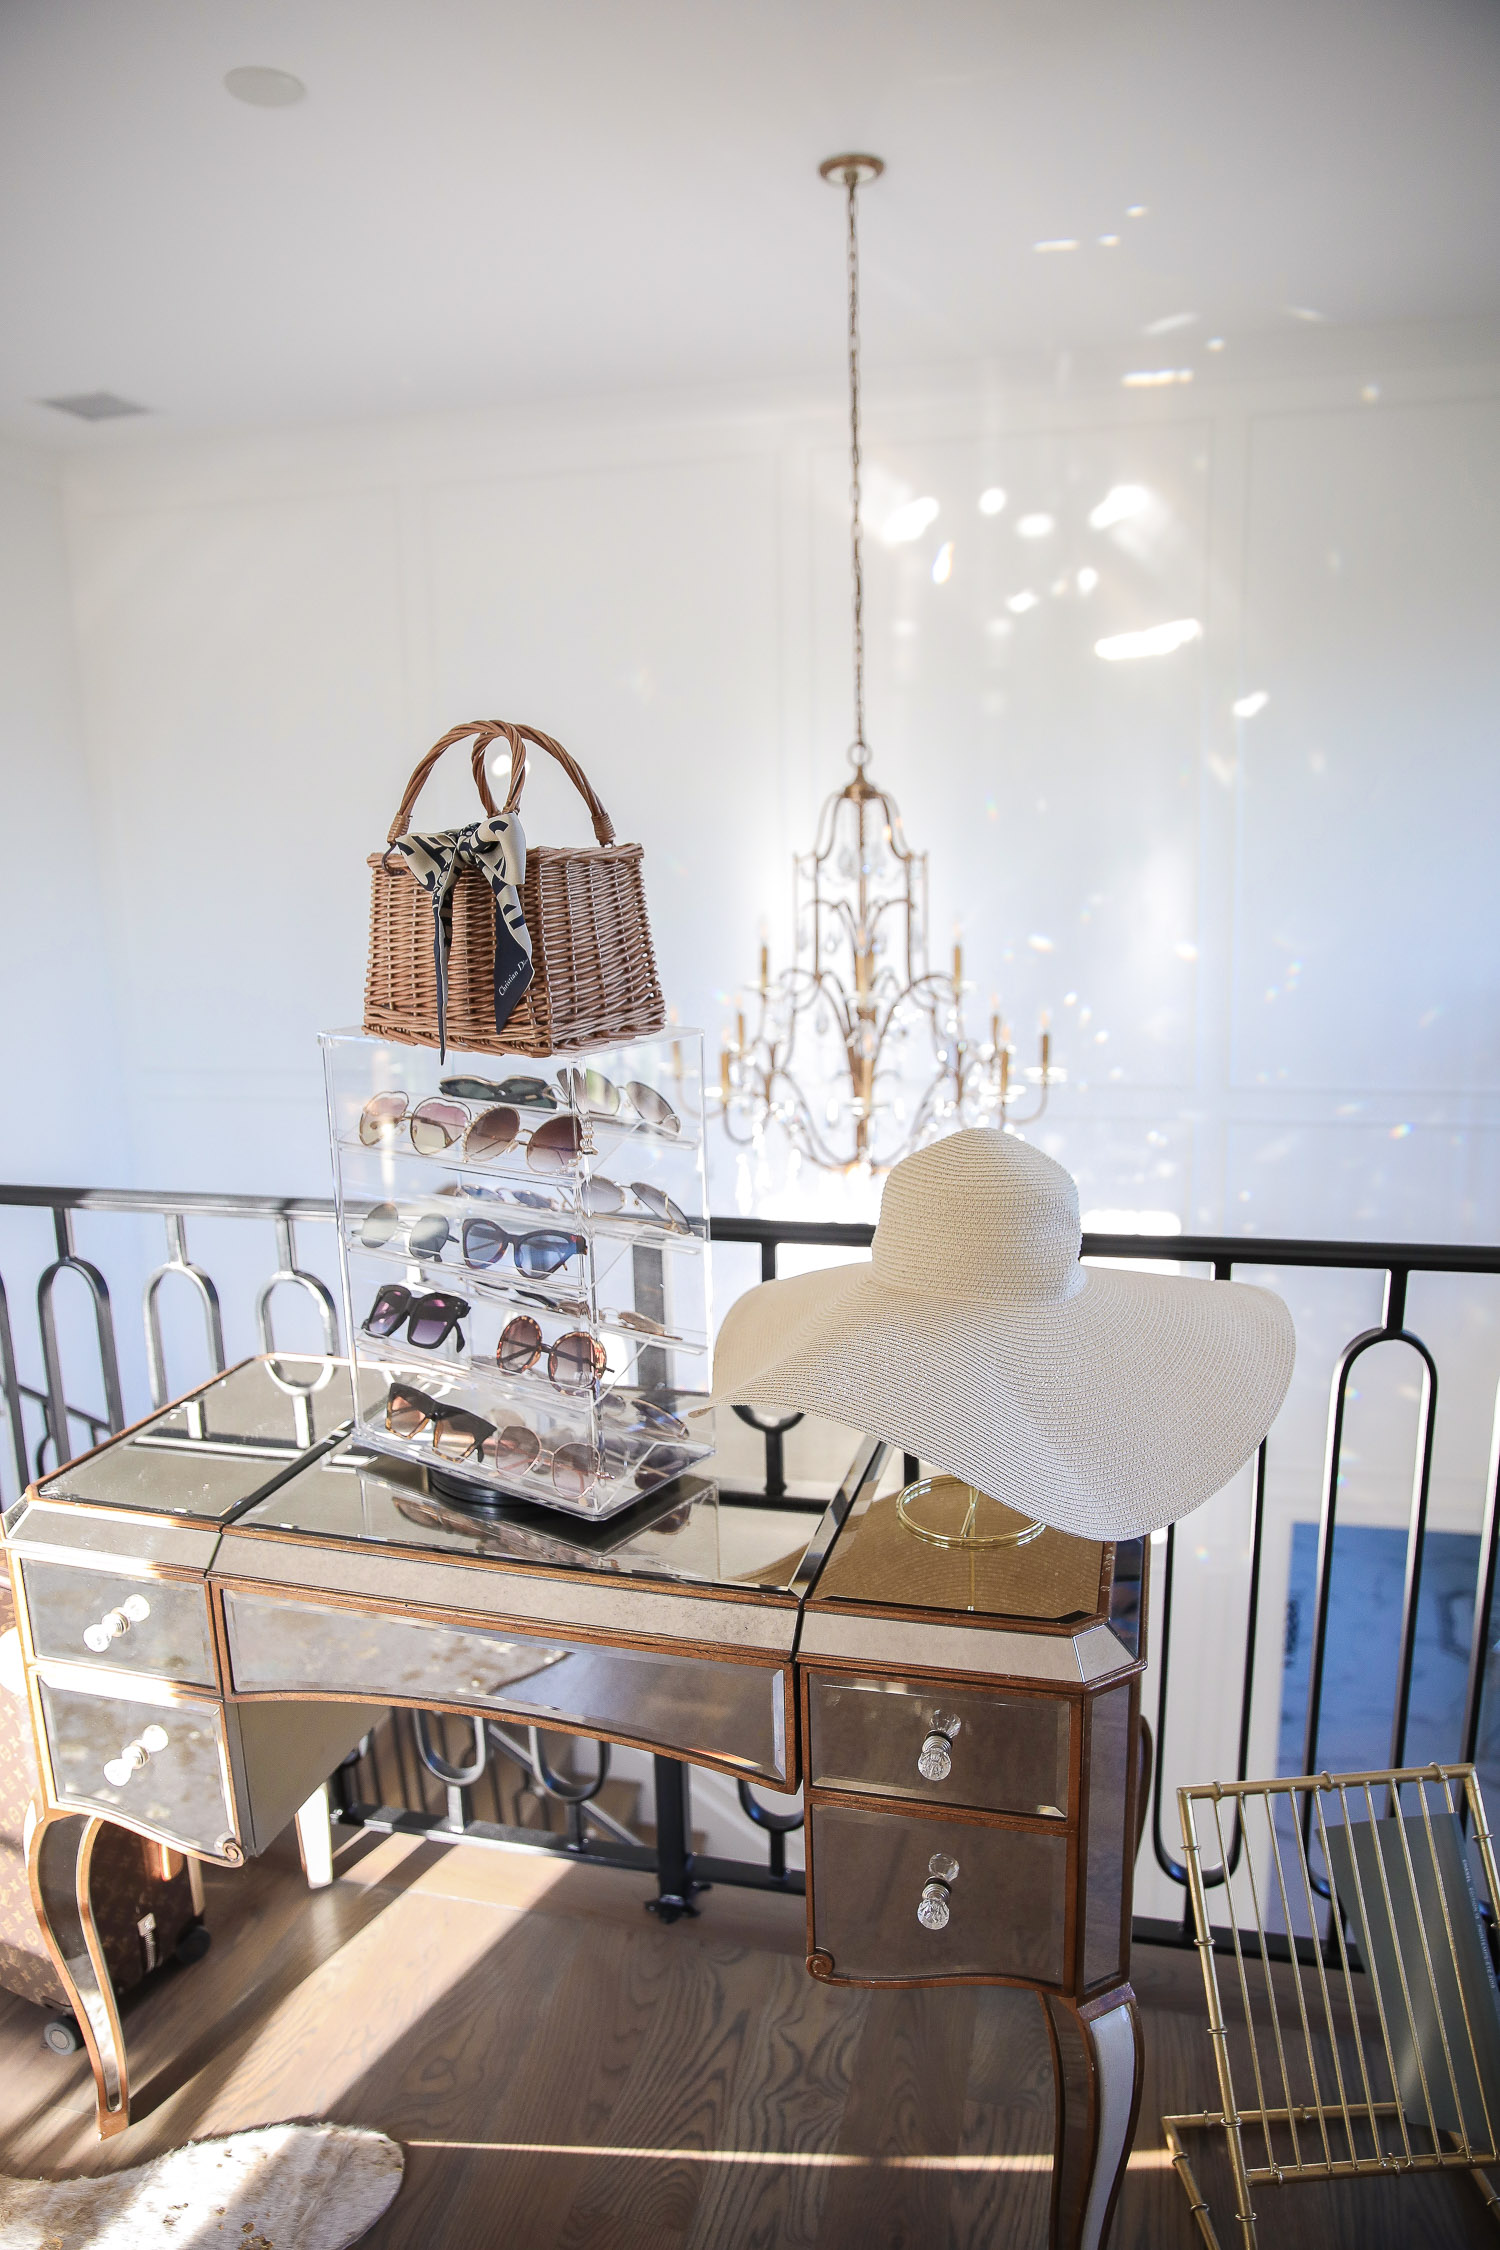 amazon must haves summer 2020, amazon home decor blog post, amazon luxury must haves, two story closet pinterest, emily gemma, closet organization | Amazon Favorites by popular US life and style blog, The Sweetest Thing: image of a Amazon MOOCA Lockable Showcase Rotating Acrylic Display Stand with 4 Removable Shelves and a Amazon QTMY Bow Rattan Woven Bag Straw Bags Top Handle Handbags Bohemia Style Beach Bag next to a Amazon MyGift 14-Inch Brass-Tone Wire Tabletop Hat Stand with a oversized sunhat on a Wayfair Reid Jewelry Vanity